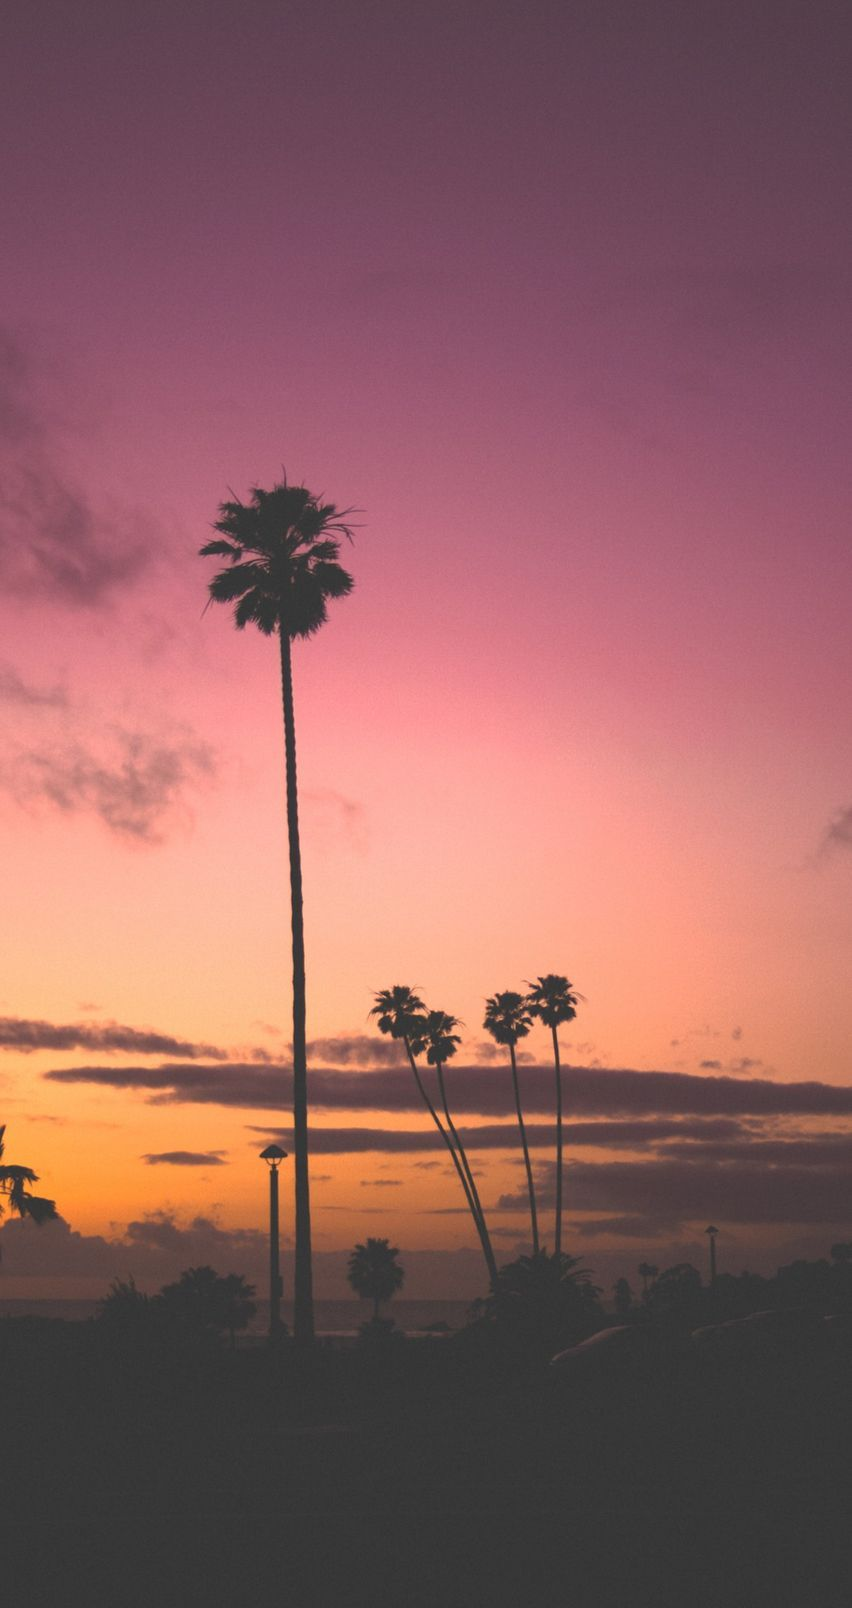 Iphone 6 Plus Wallpaper Tumblr Google Search Seabeachimageshd Tumblr Iphone Wallpaper Palm Trees Wallpaper Tree Wallpaper Iphone